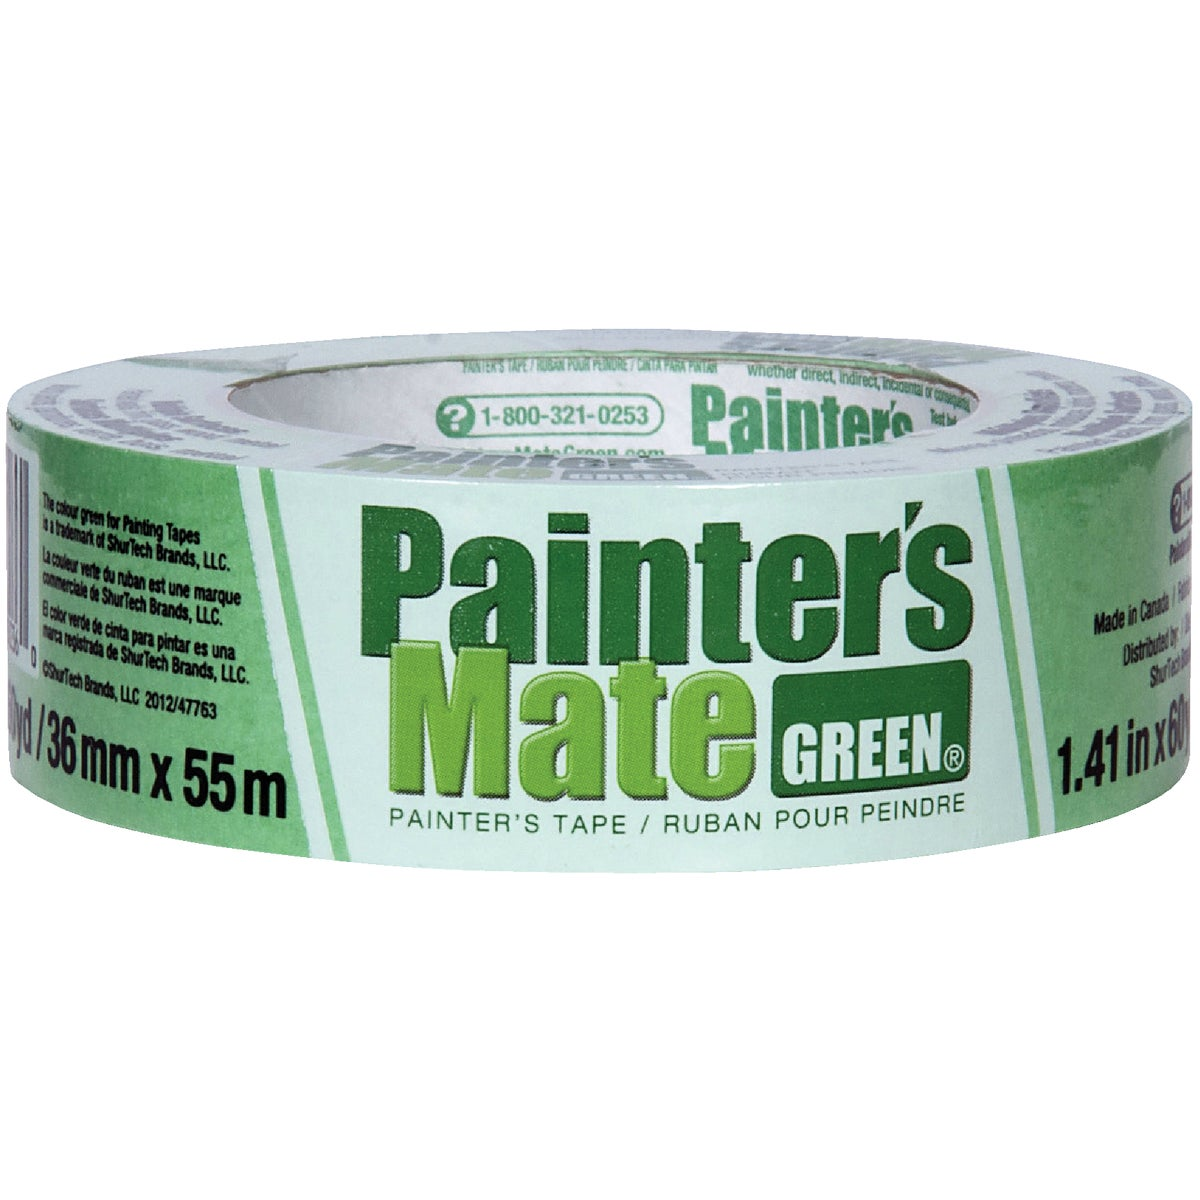 "1.41"" PAINTERS MATE TAPE - 667017 by Shurtech"